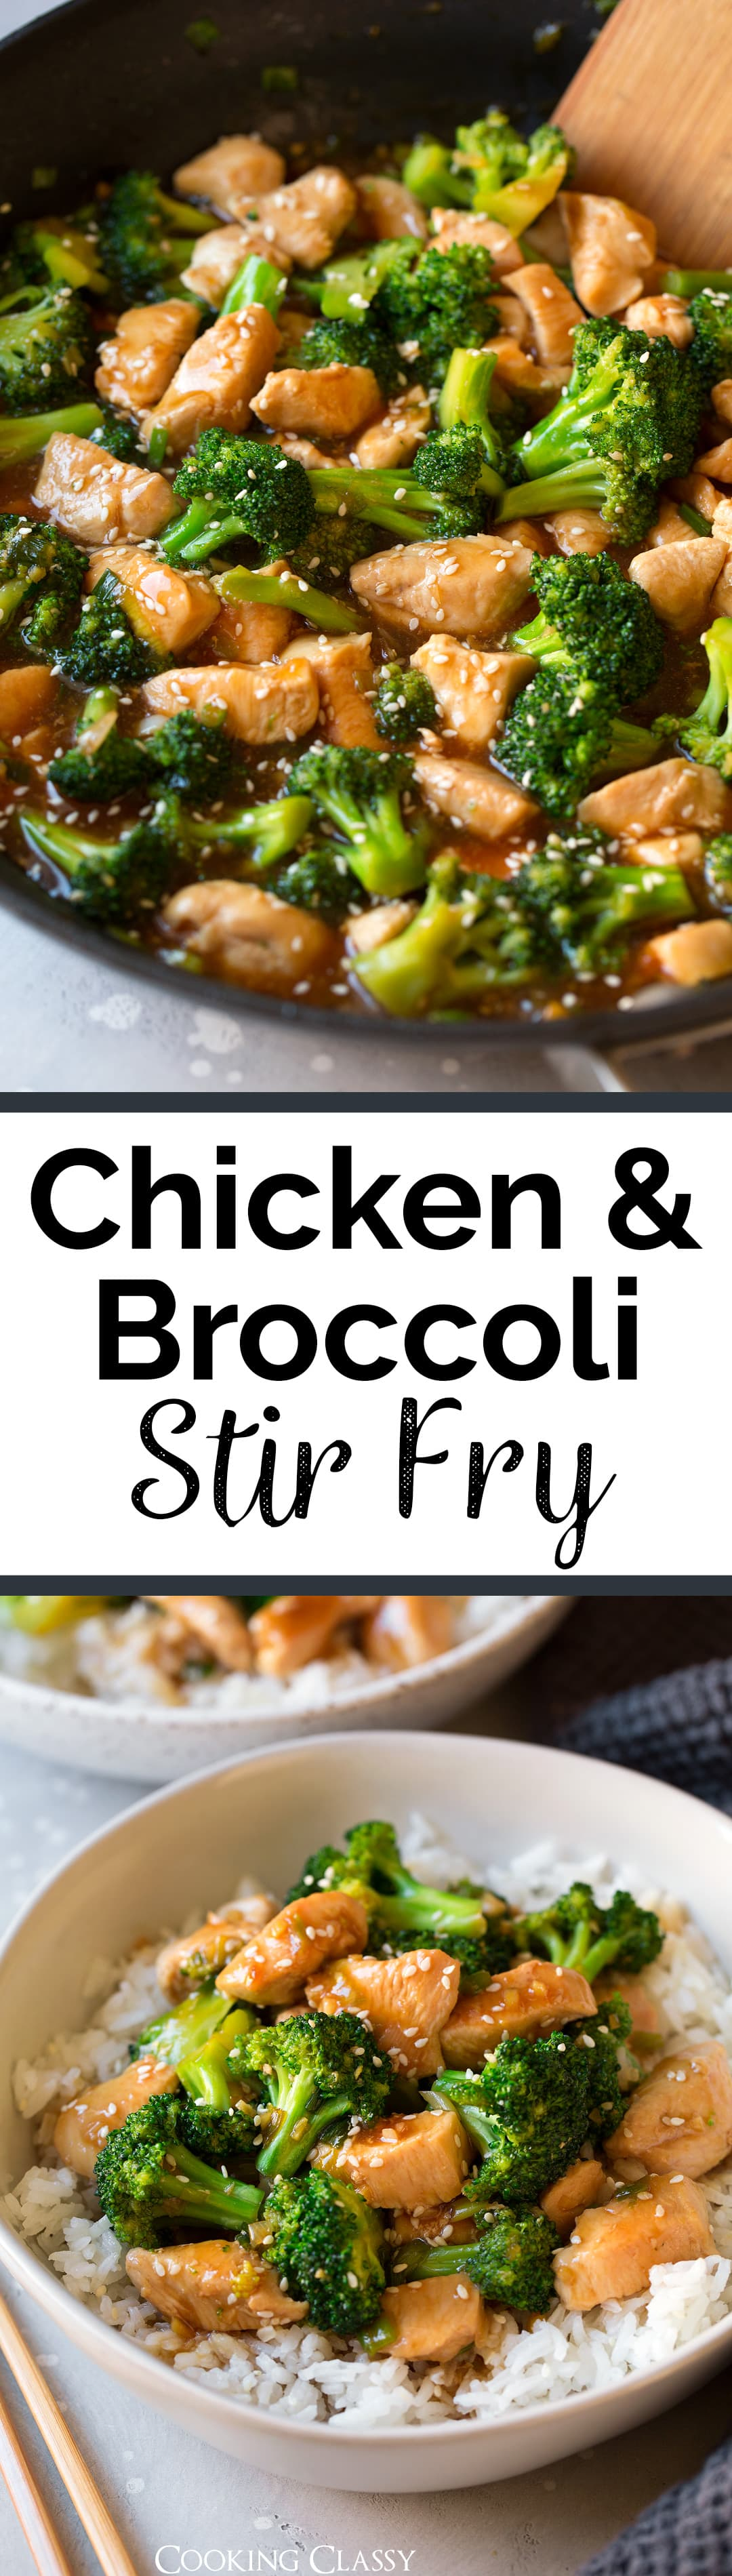 Chicken and Broccoli Stir Fry - Pan seared chicken and sautéed broccoli are covered in a sweet and salty teriyaki style sauce that will leave you wanting more! It's such an easy and flavorful recipe that's perfect for those hectic weekdays, plus it's sure to satisfy those Chinese take-out cravings.